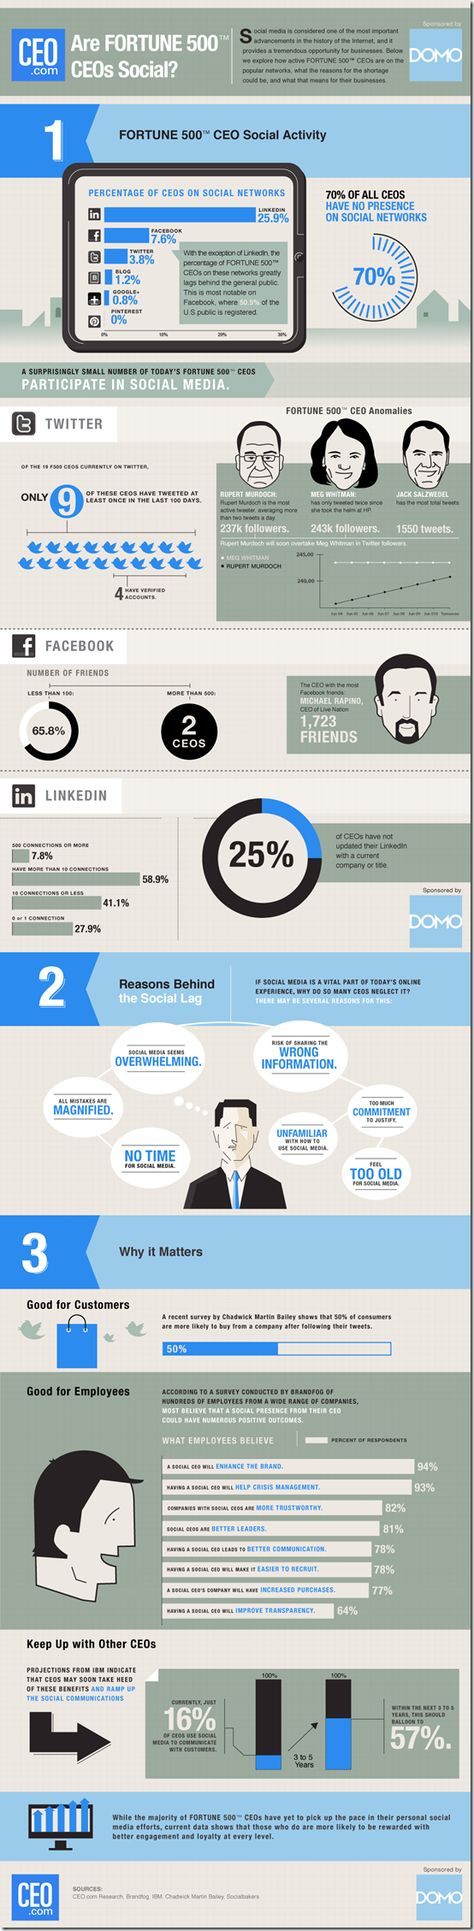 Social-CEO-Index-2012 #infographic